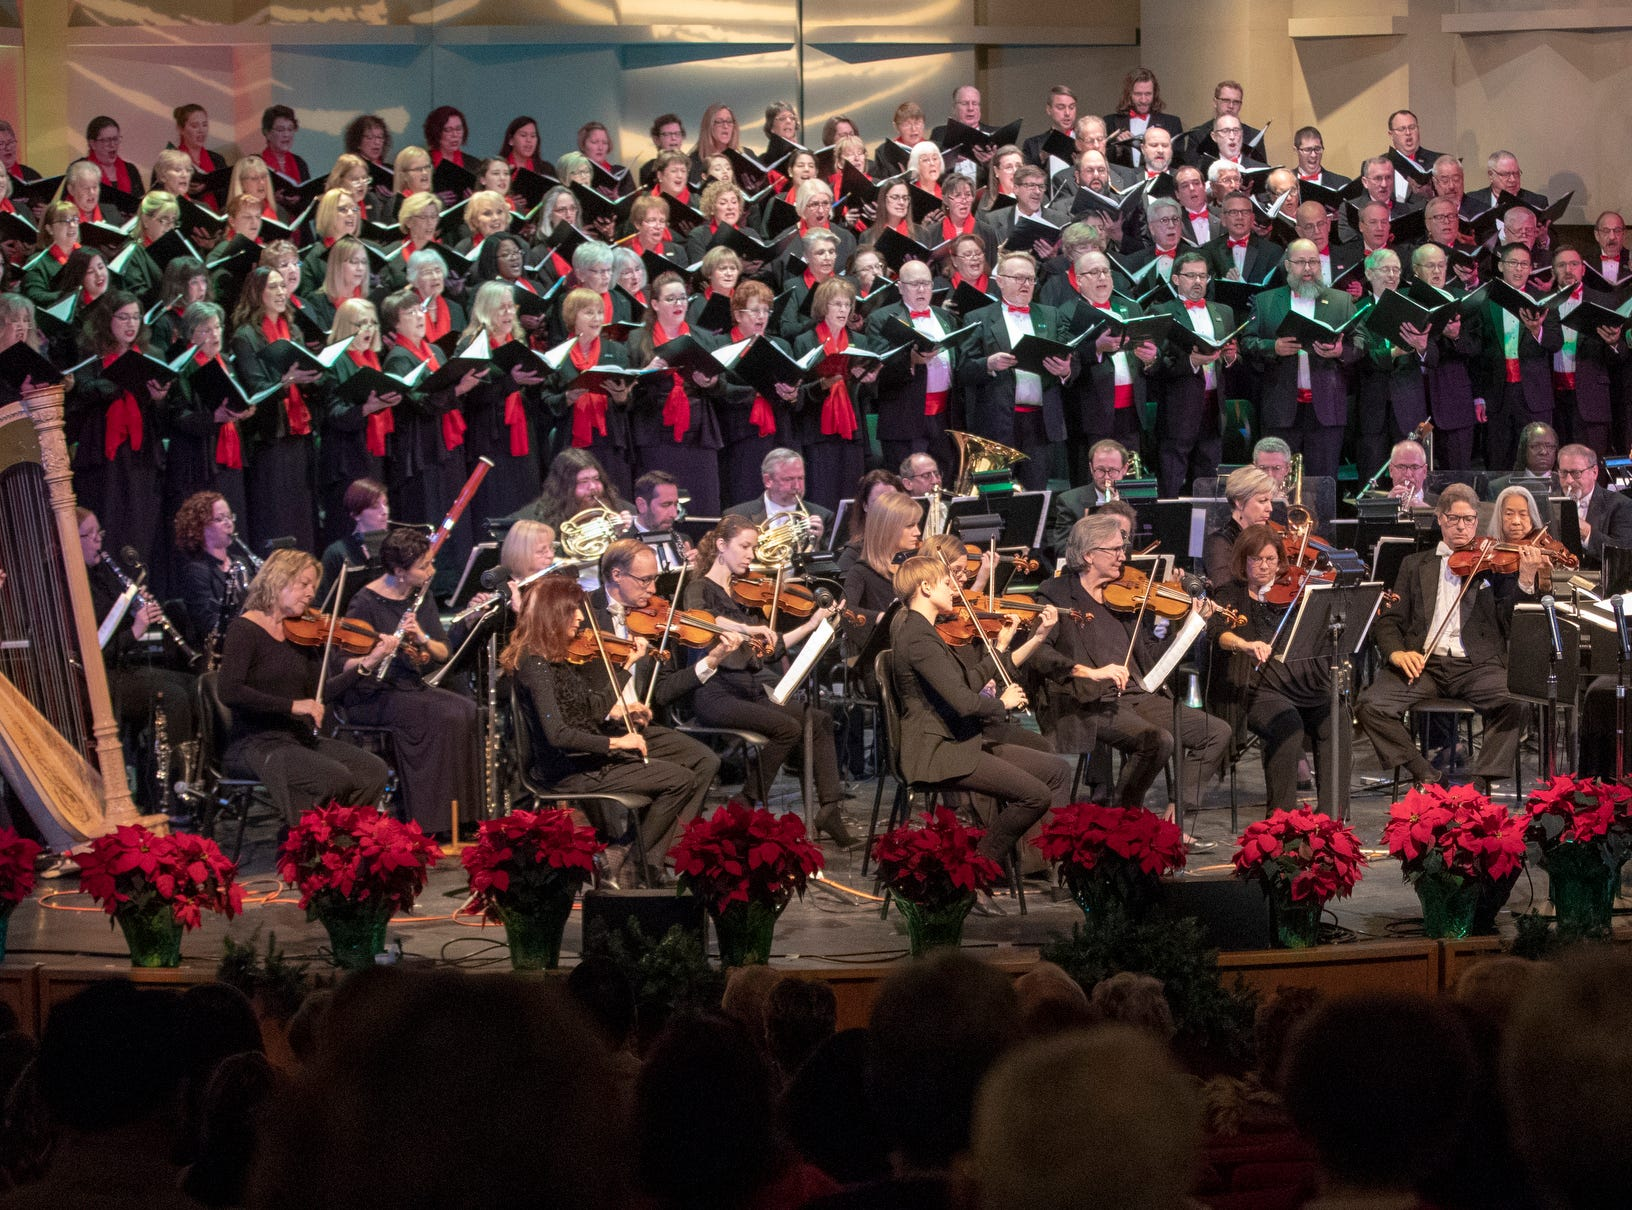 The evening's Festival of Carols performance at Warren Performing Arts Center, Sunday, Dec; 9, 2018. Michele McConnell (not on stage) is a soprano from Indianapolis, and has lived and performed at the highest level in New York for the past 20 years. Dance Kaleidoscope and Indianapolis Chamber Orchestra joined the Indianapolis Symphonic Choir for the show, that will be repeated several more times in the area this season.